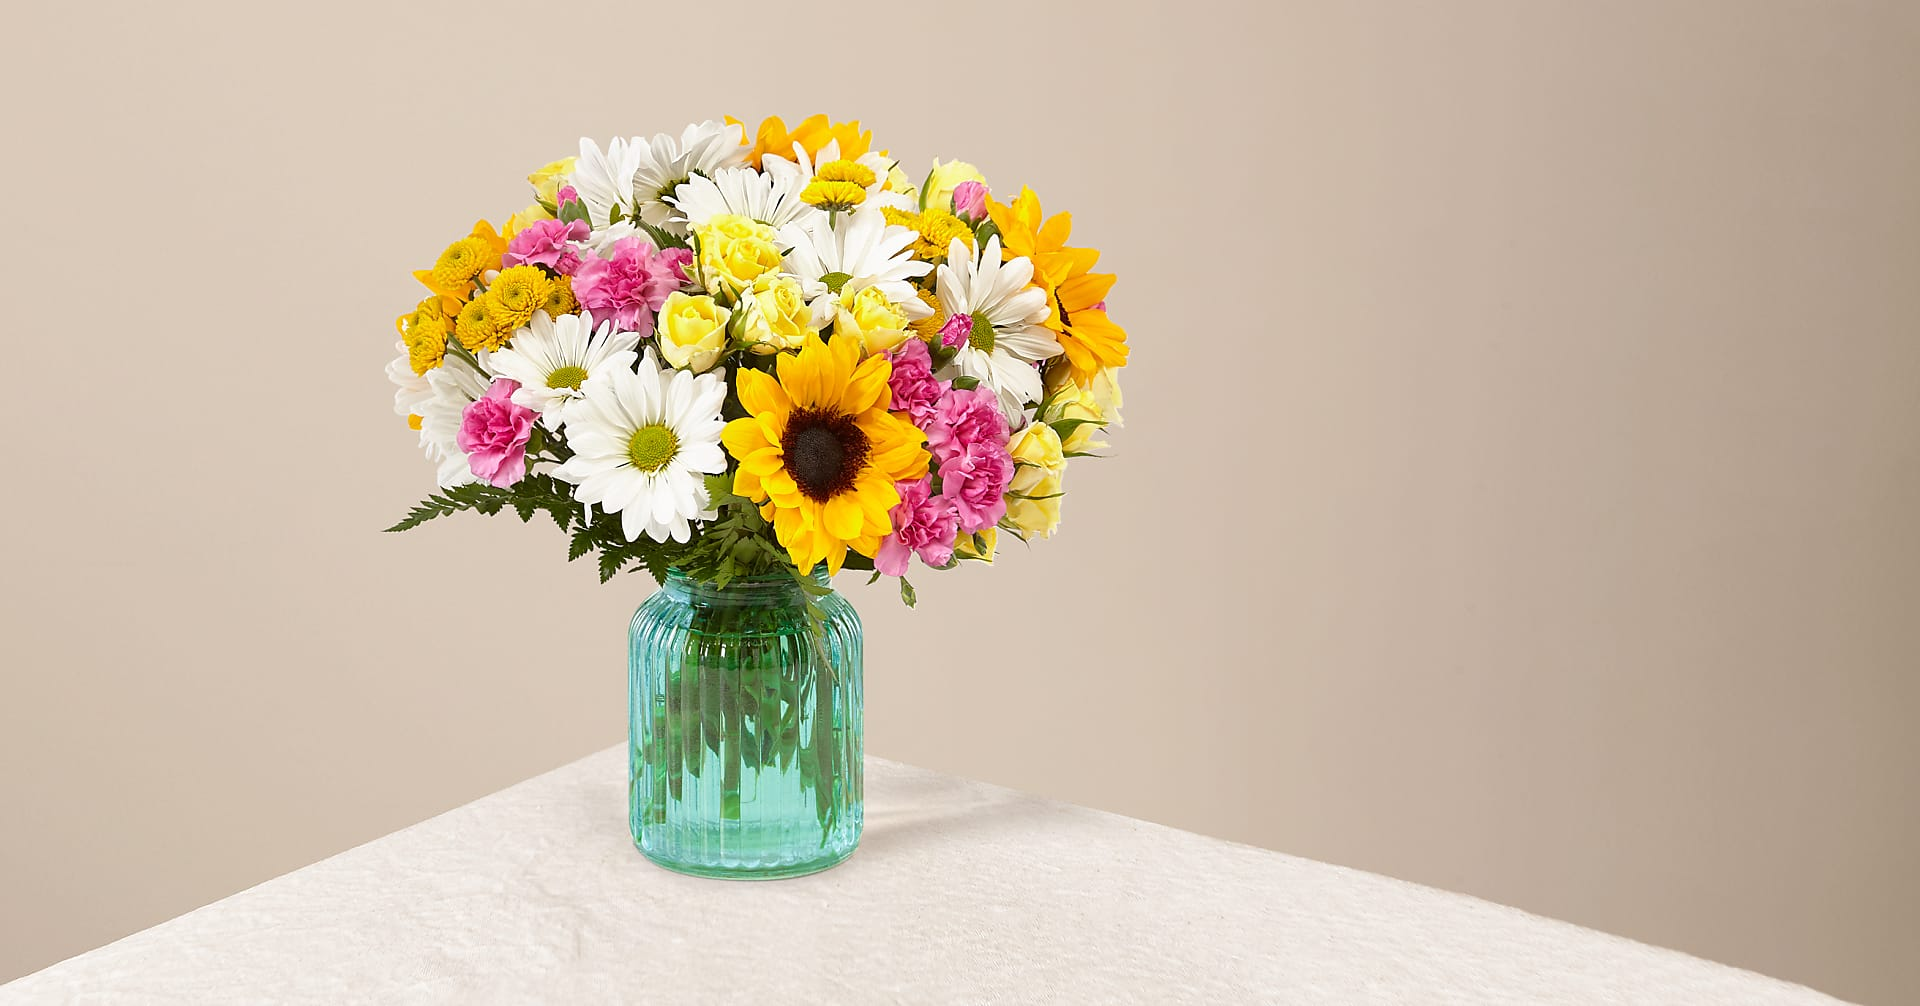 Sunlit Meadows Bouquet - Image 2 Of 4